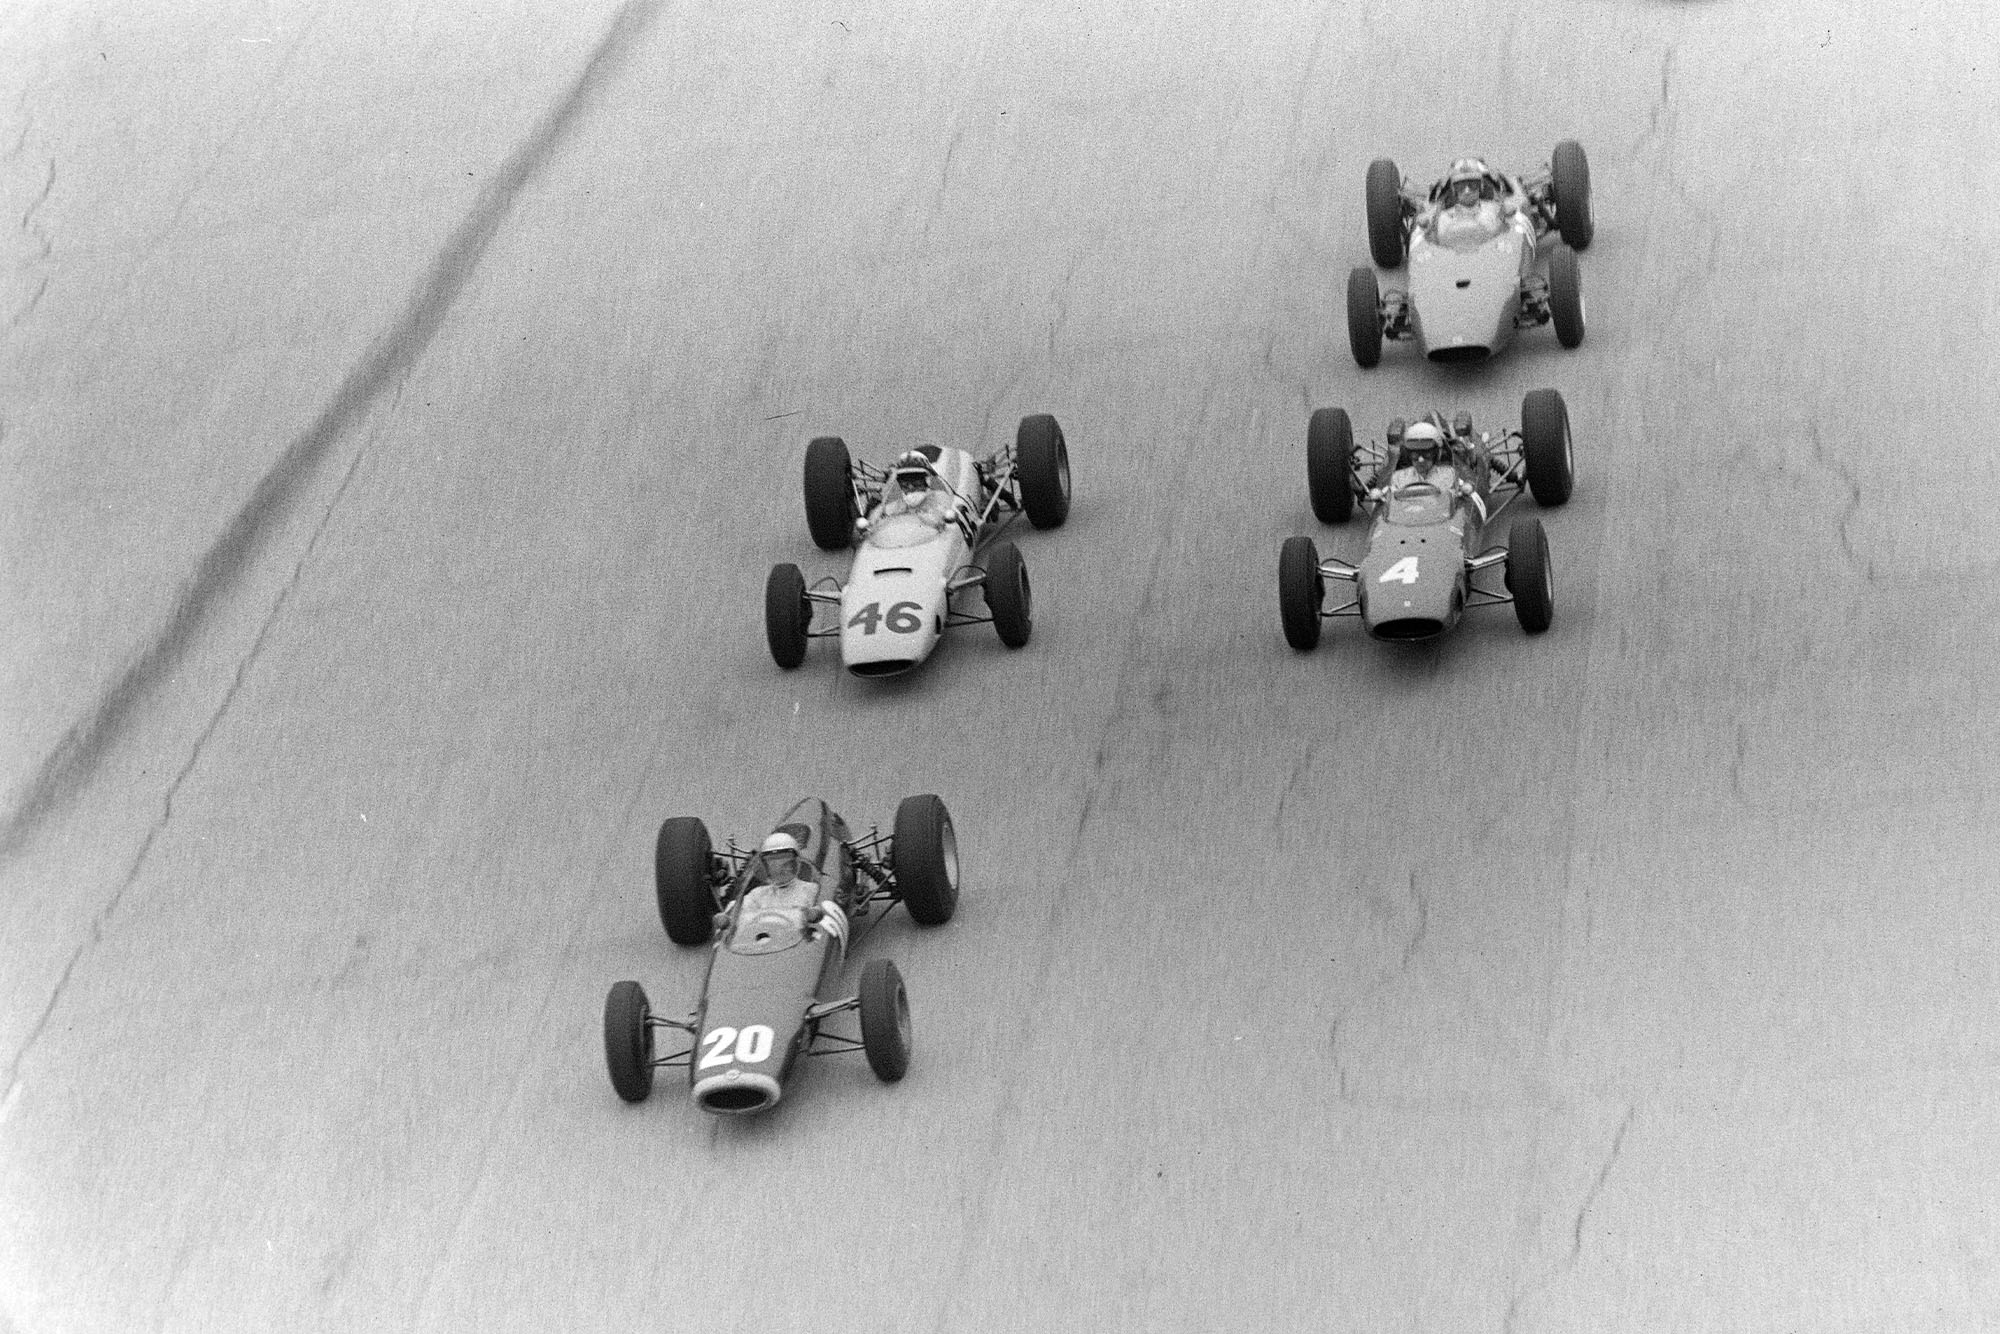 Richie Ginther, BRM P261, leads, while Innes Ireland, BRP 2 BRM, battles with Lorenzo Bandini, Ferrari 158.